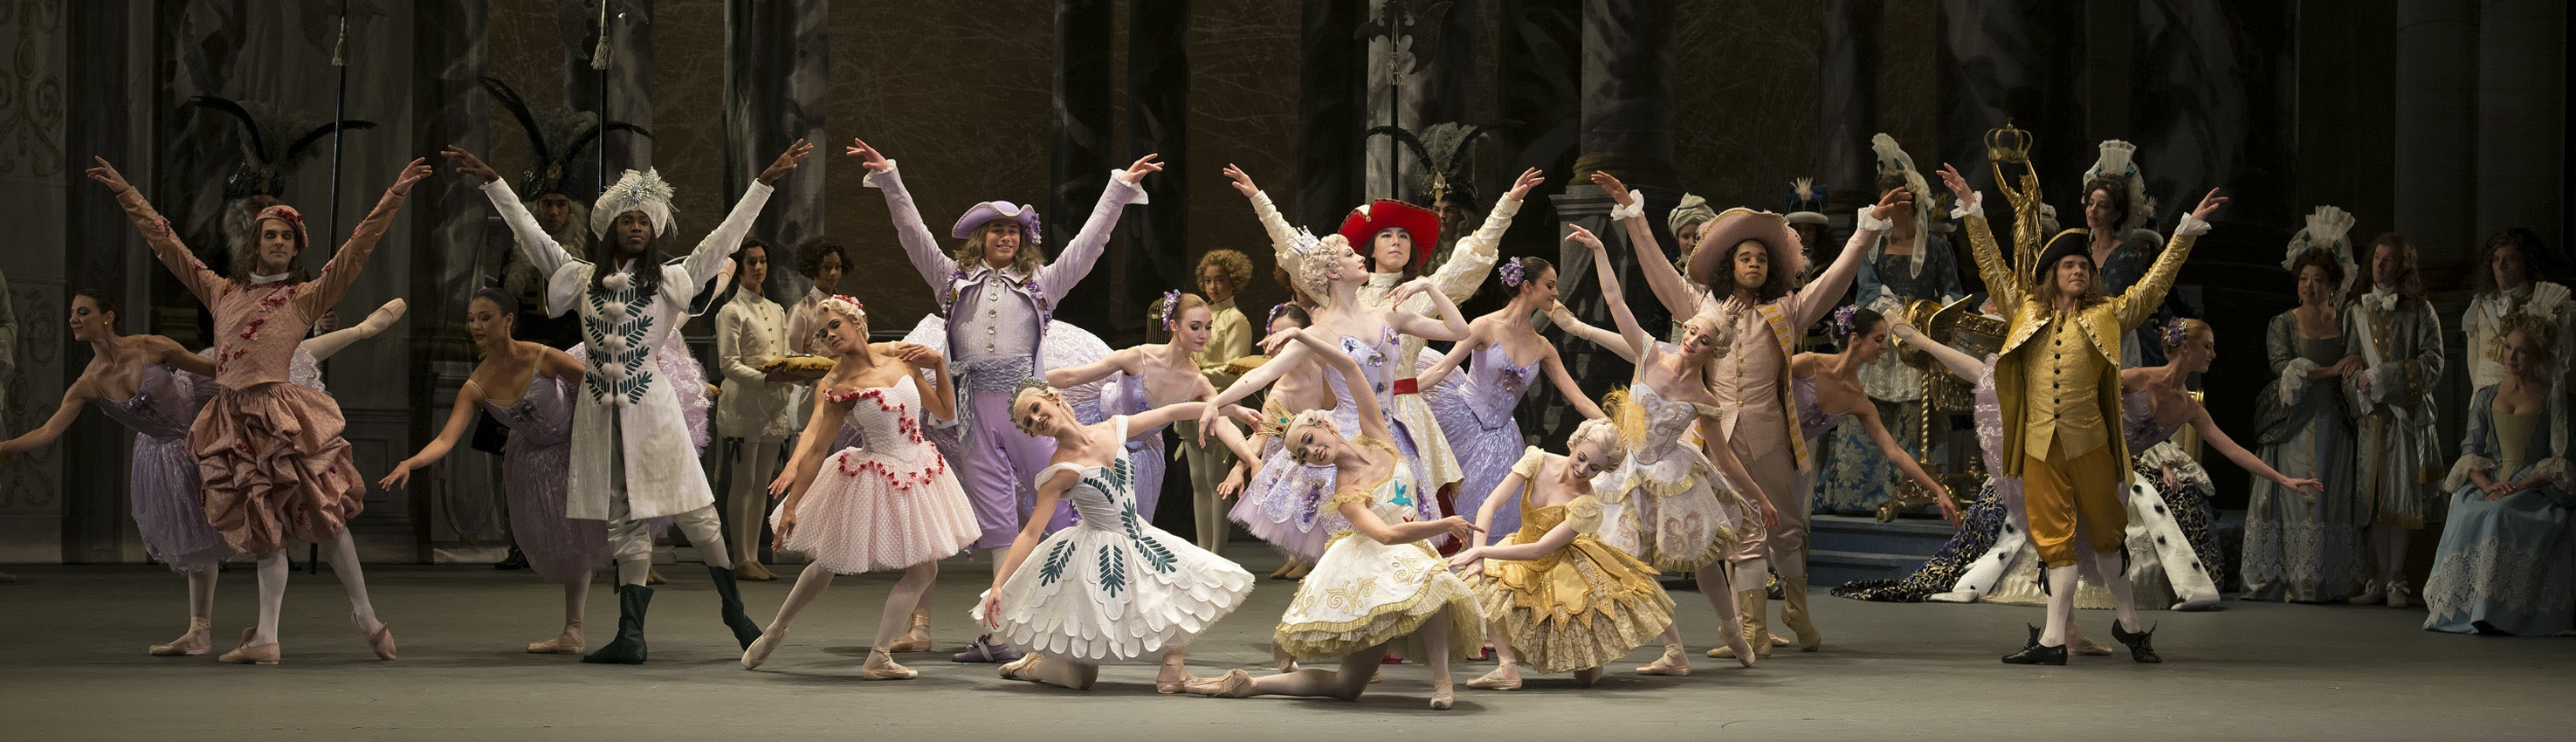 ABT in Ratmansky's Sleeping Beauty.  Photo by Gene Schiavone.